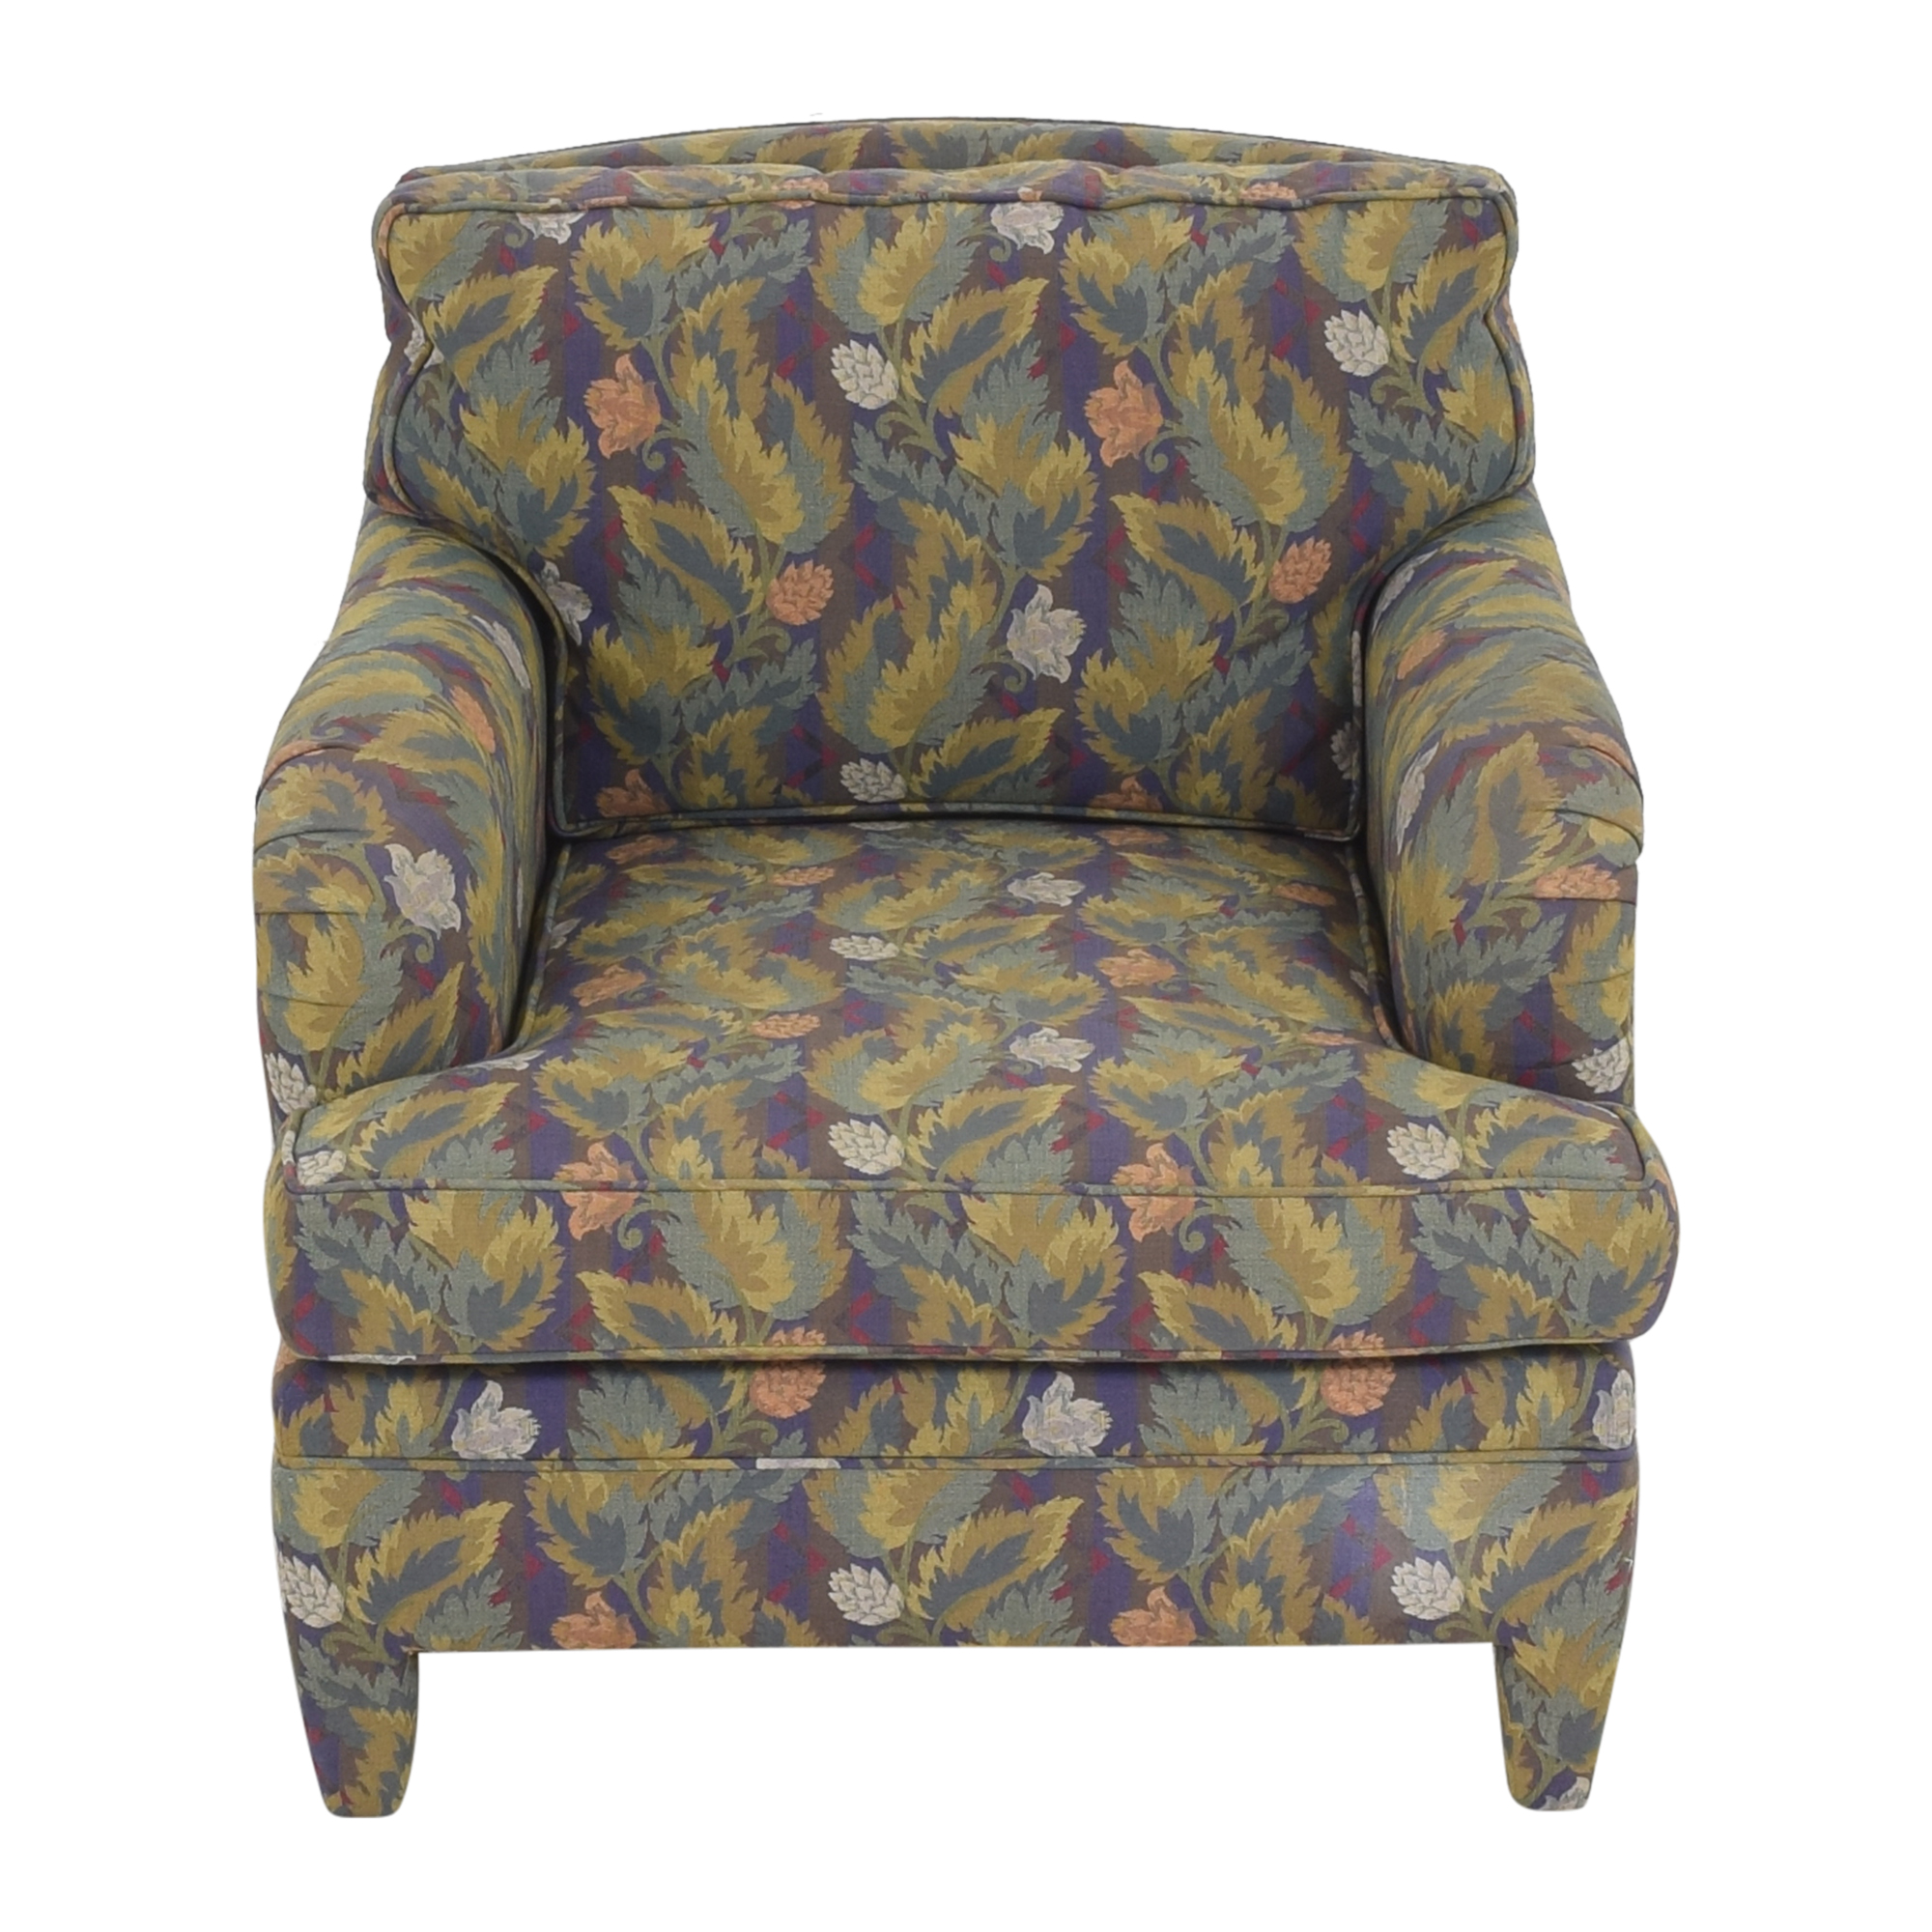 Donghia Donghia Upholstered Club Chair discount